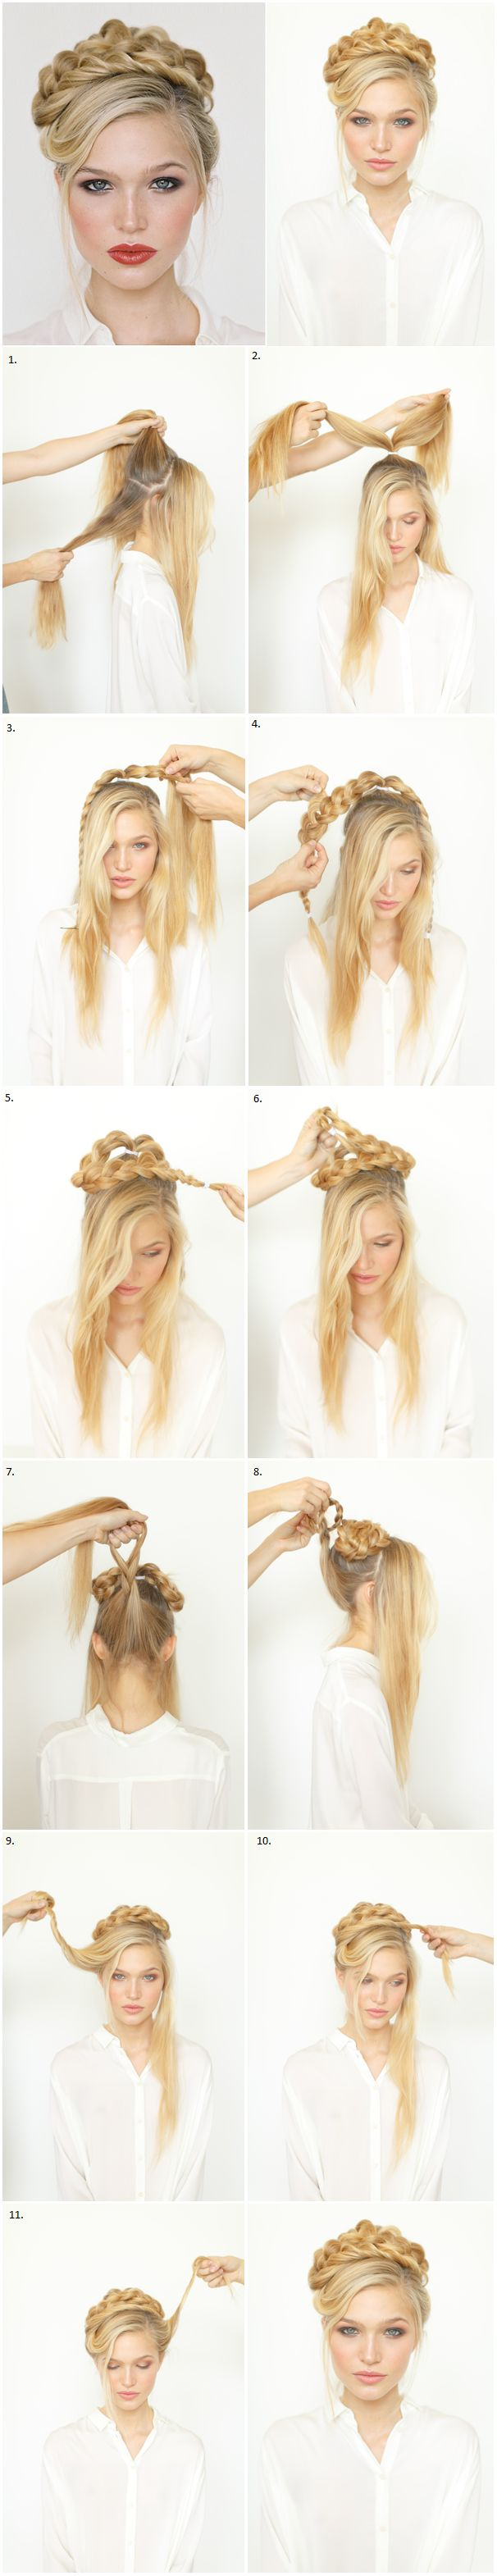 538 best Hair updo and braids images on Pinterest | Hair ideas ...